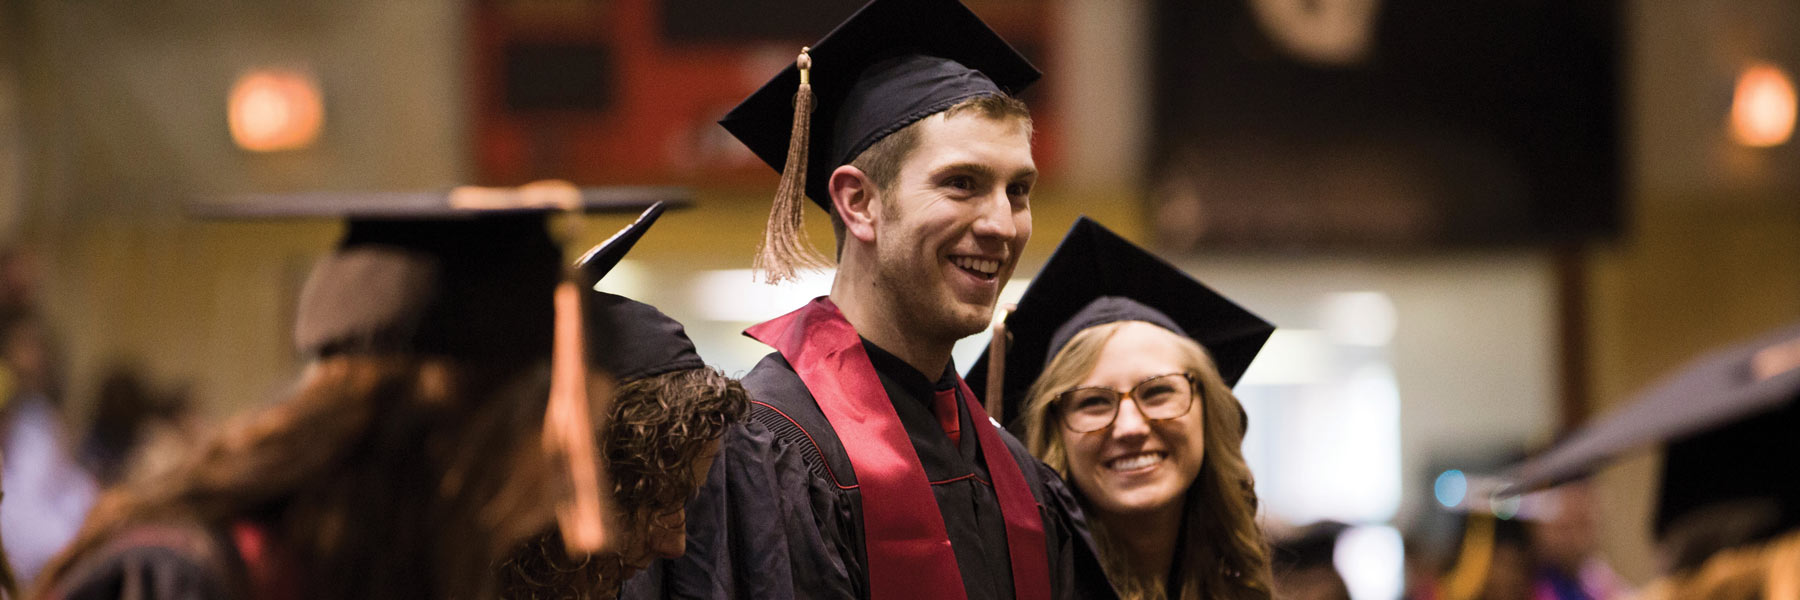 Young man smiling and celebrating his graduation during commencement.